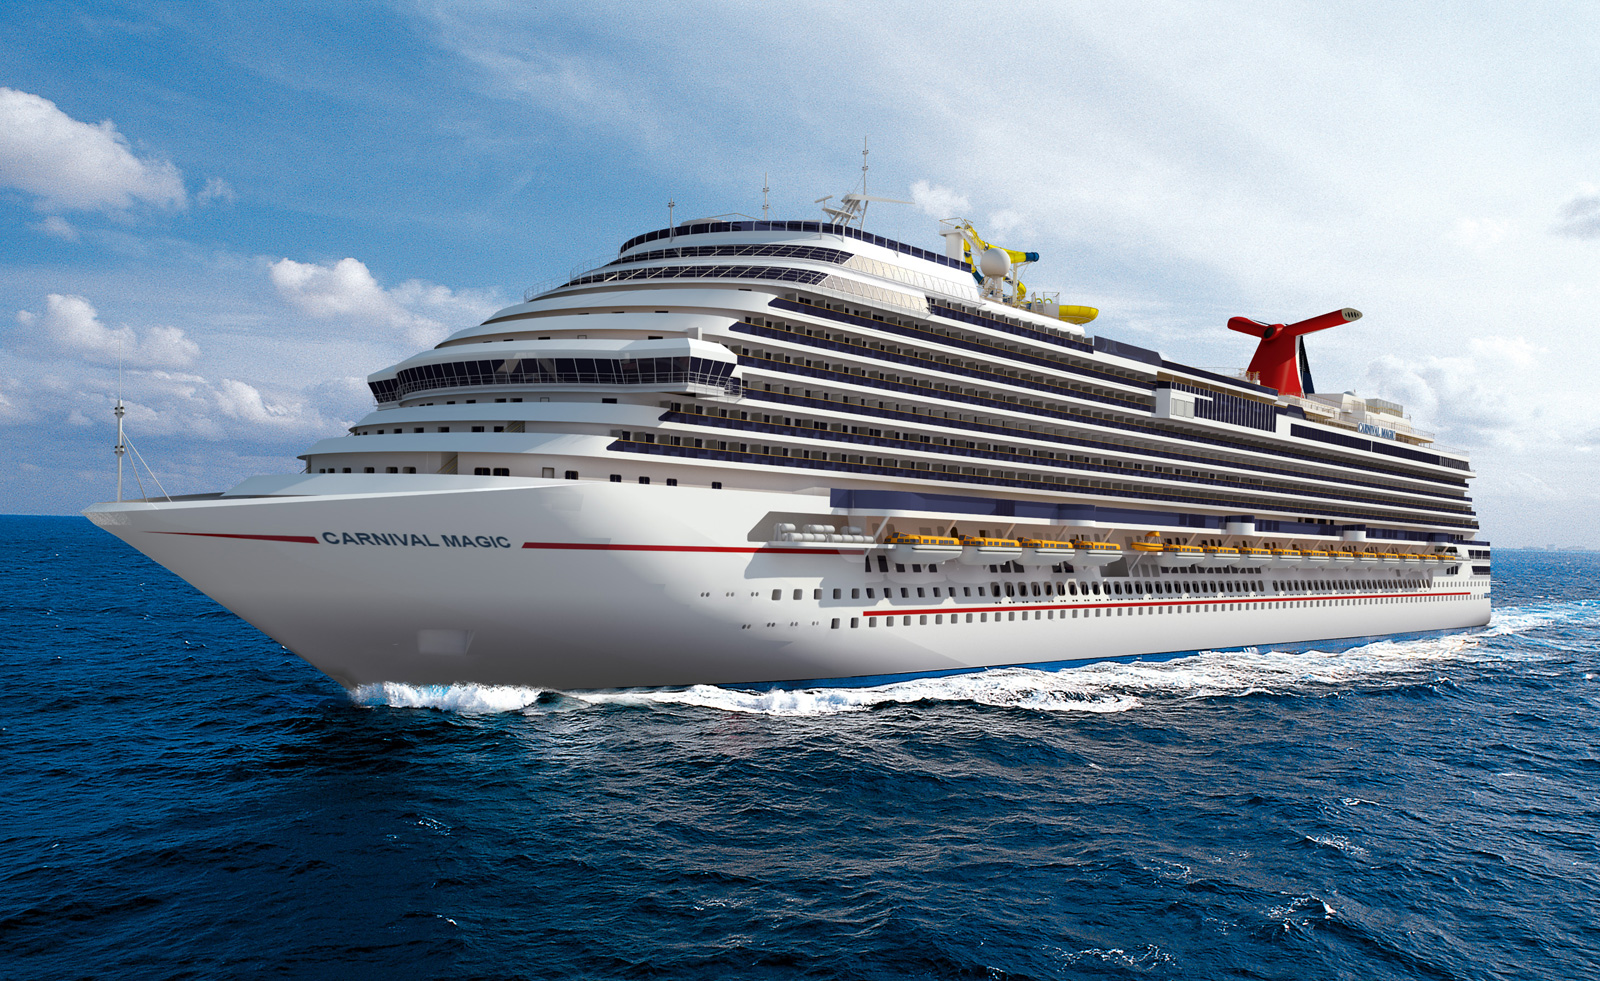 Carnival Magic - Luxury cruise ships